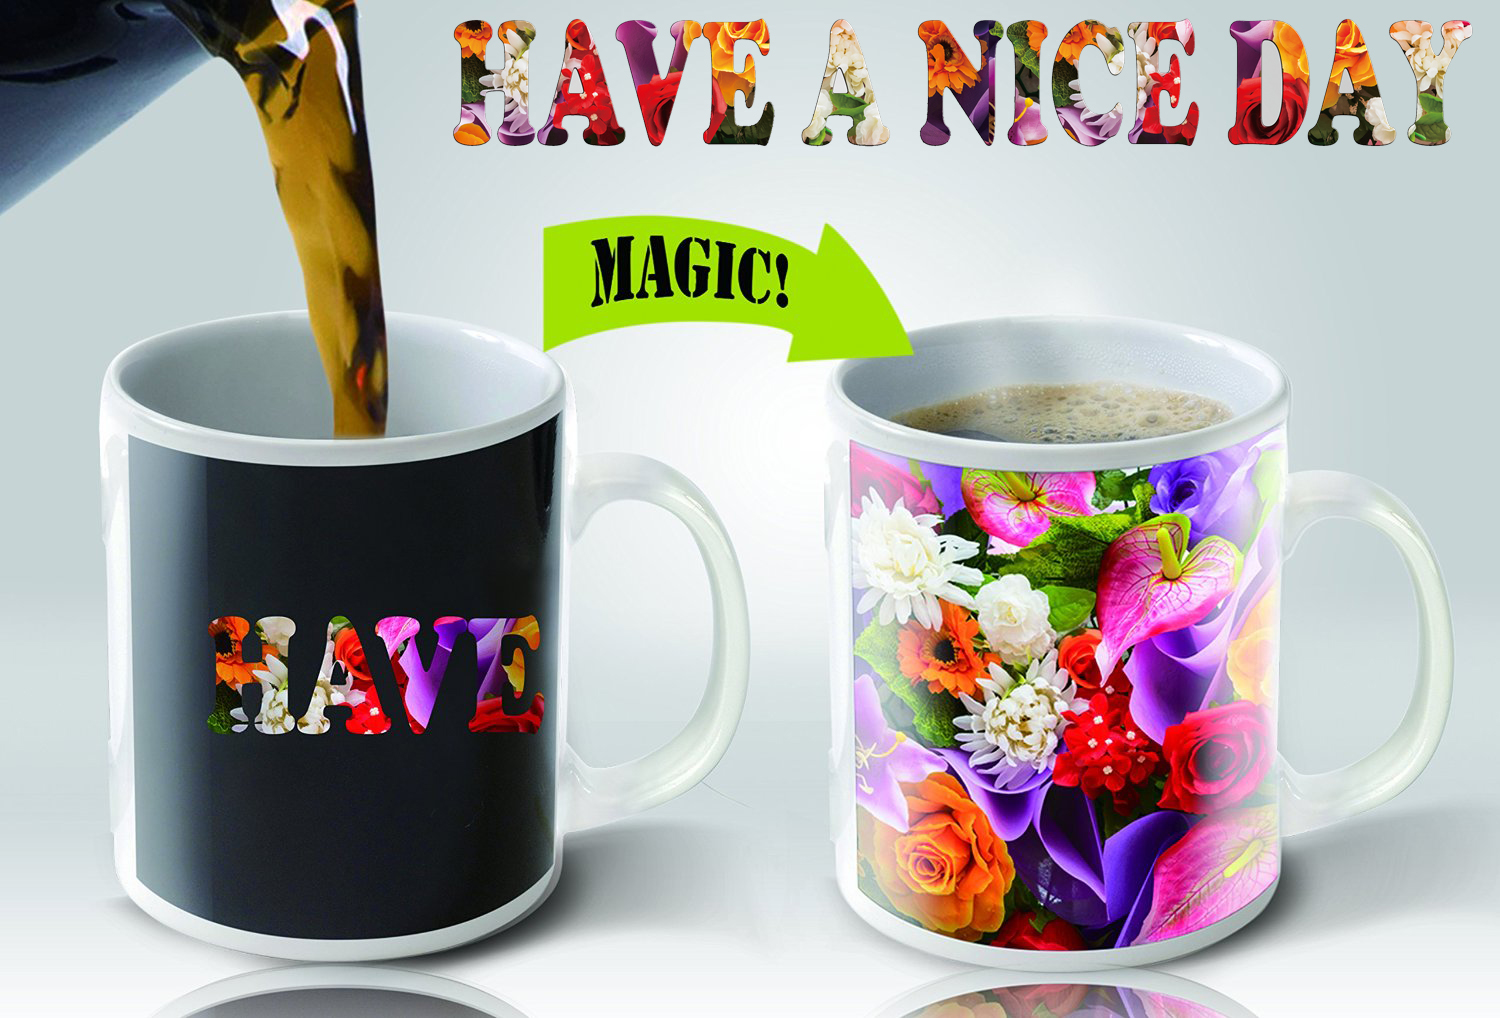 Magic Mugs Amazing New Heat Sensitive Color Changing Coffee Mug Good Unique Gift Idea Flowers Design 11oz 100 Ceramic Mug Cortunex The Best Color Changing Heat Sensitive Coffee Mugs